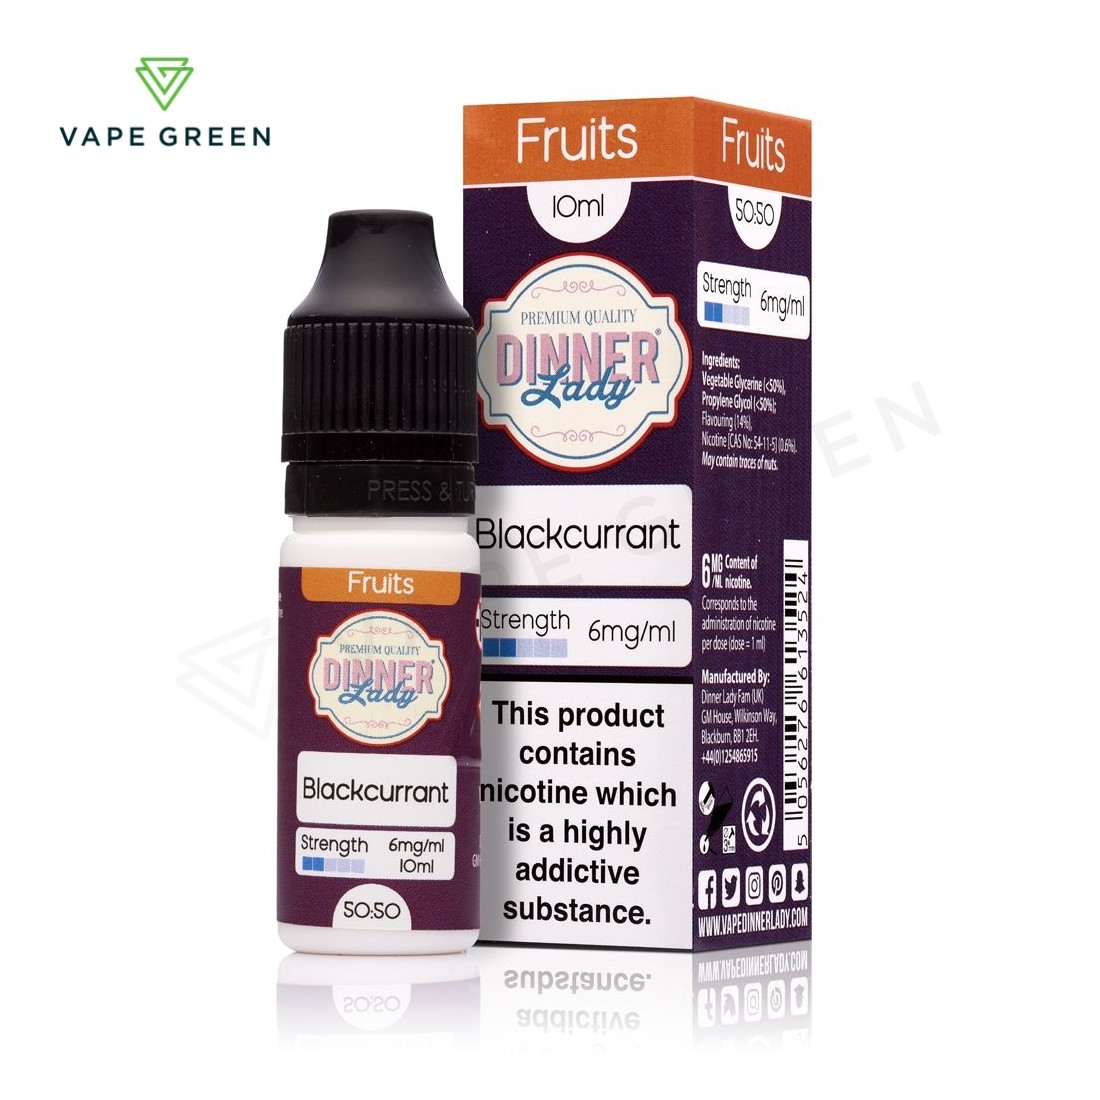 Blackcurrant E-Liquid by Dinner Lady Fruits 50/50